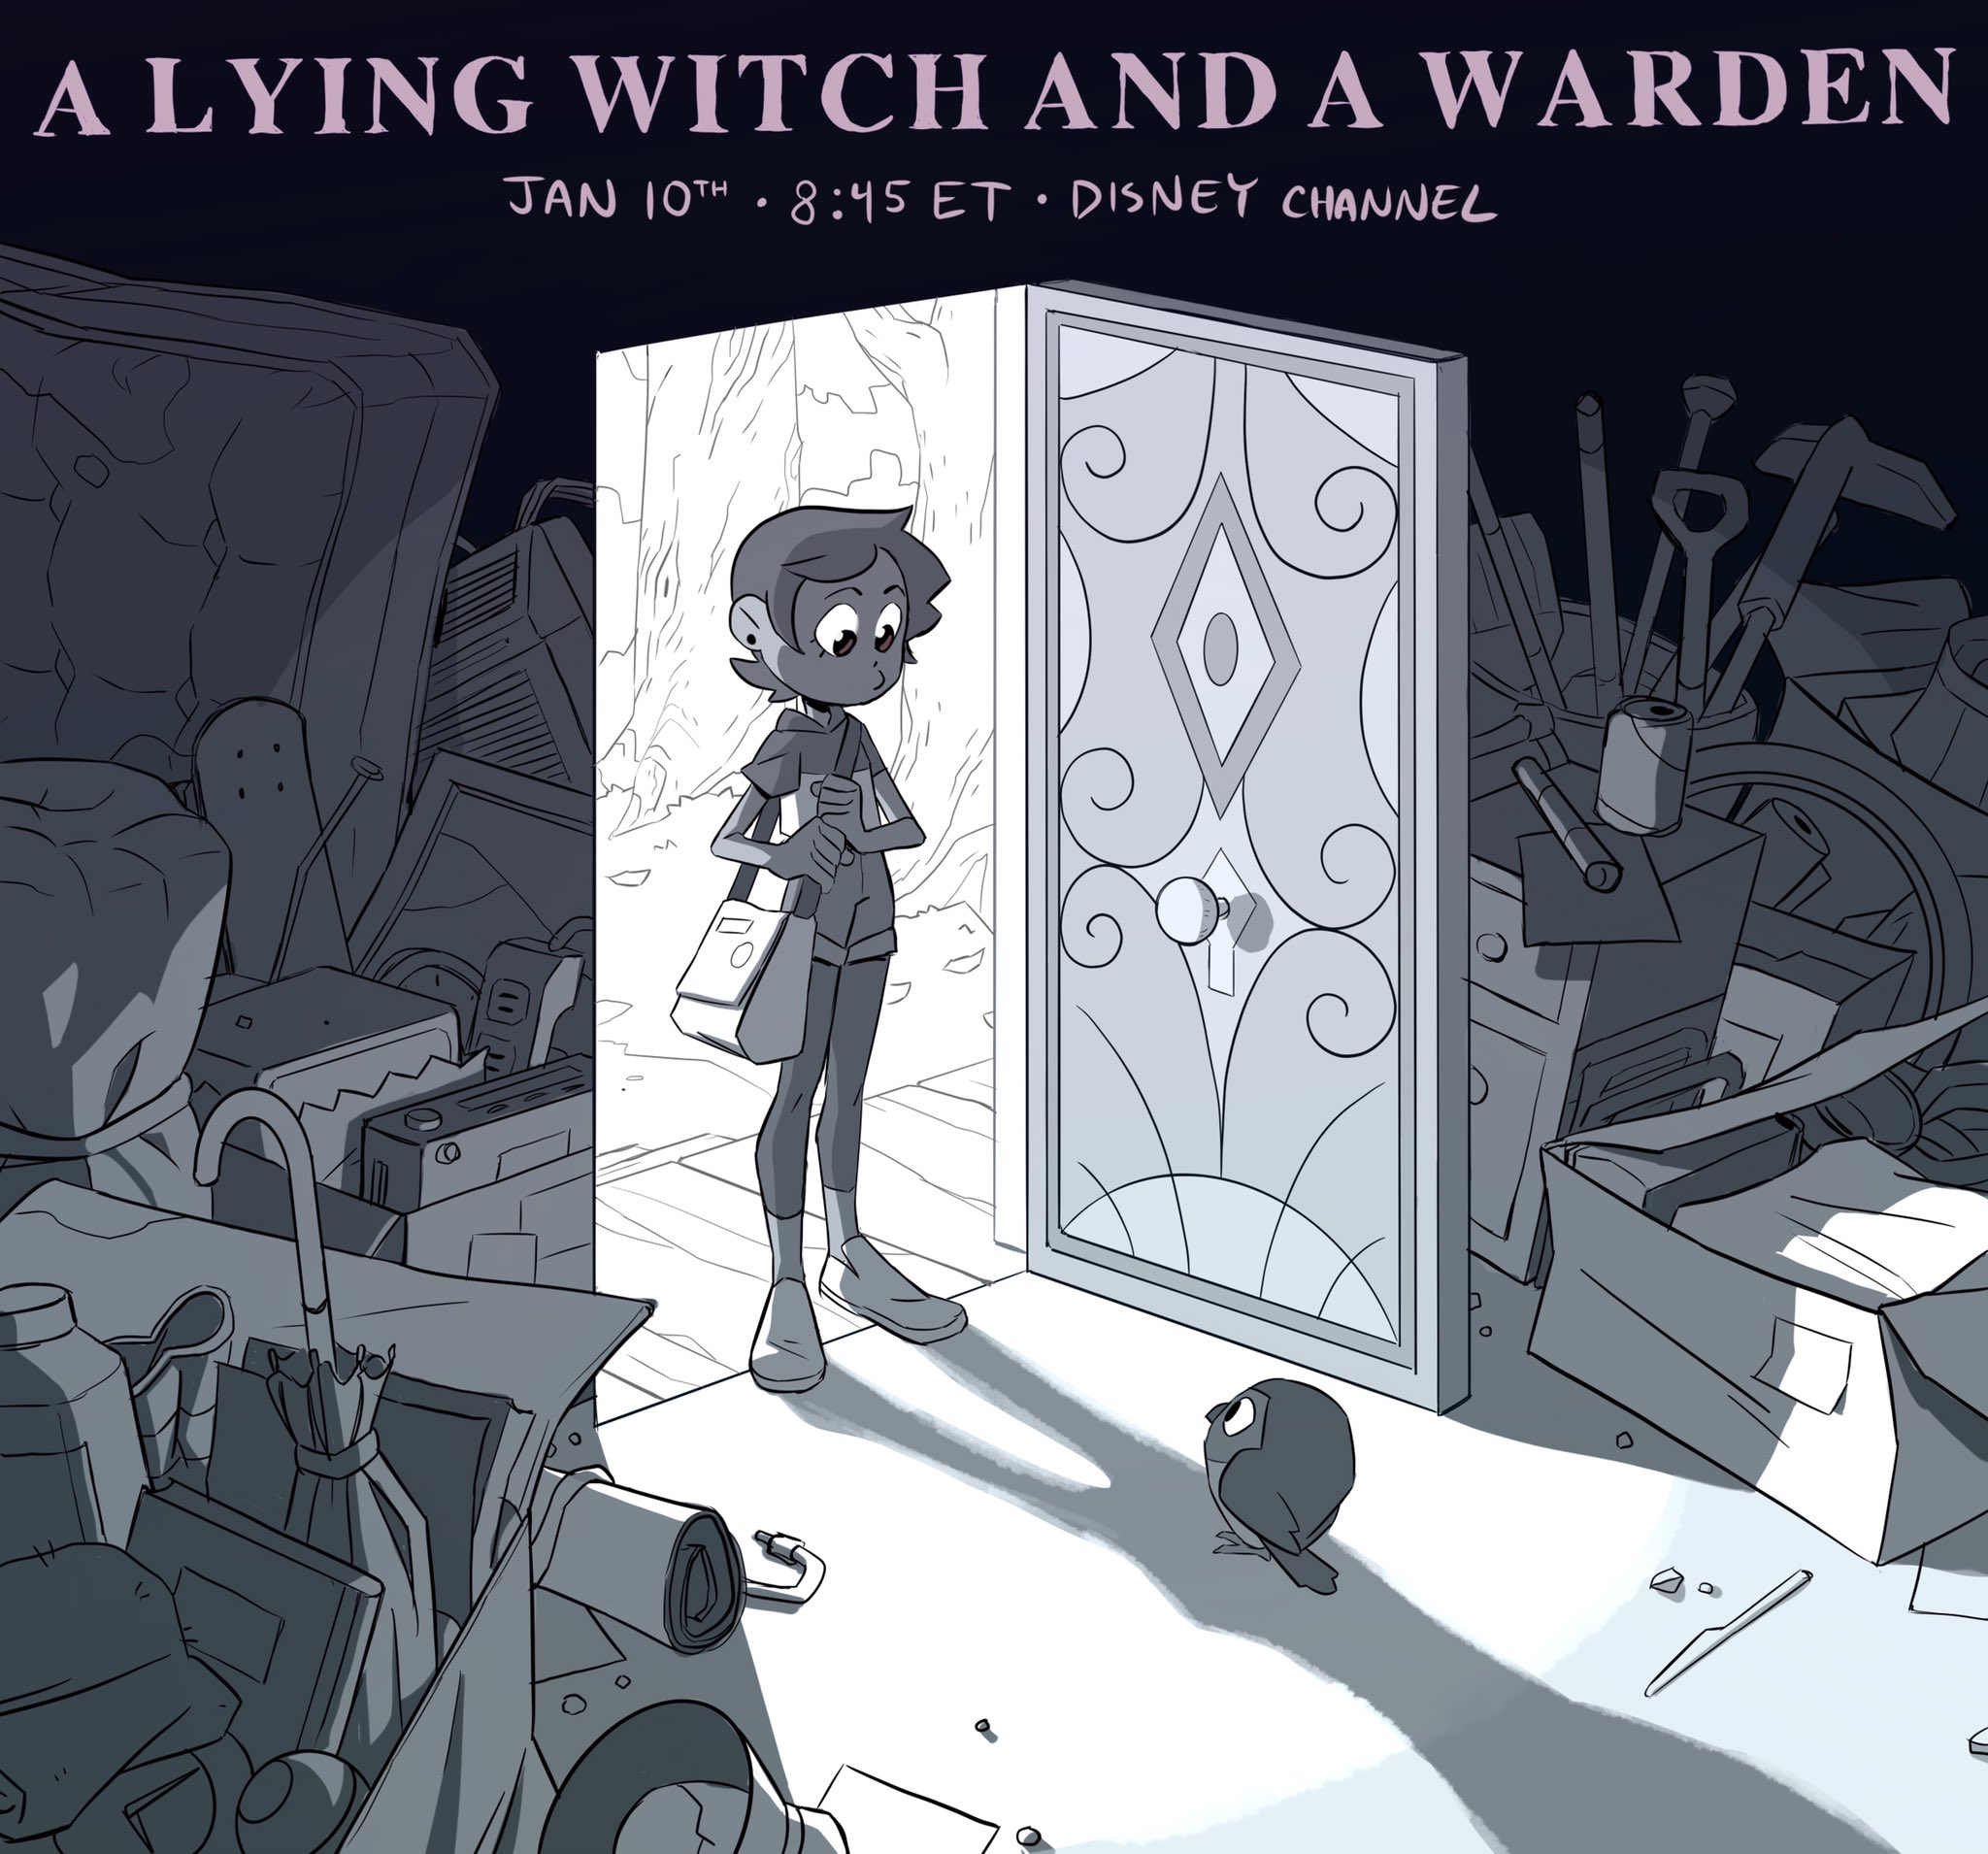 A Lying Witch and a Warden/Gallery